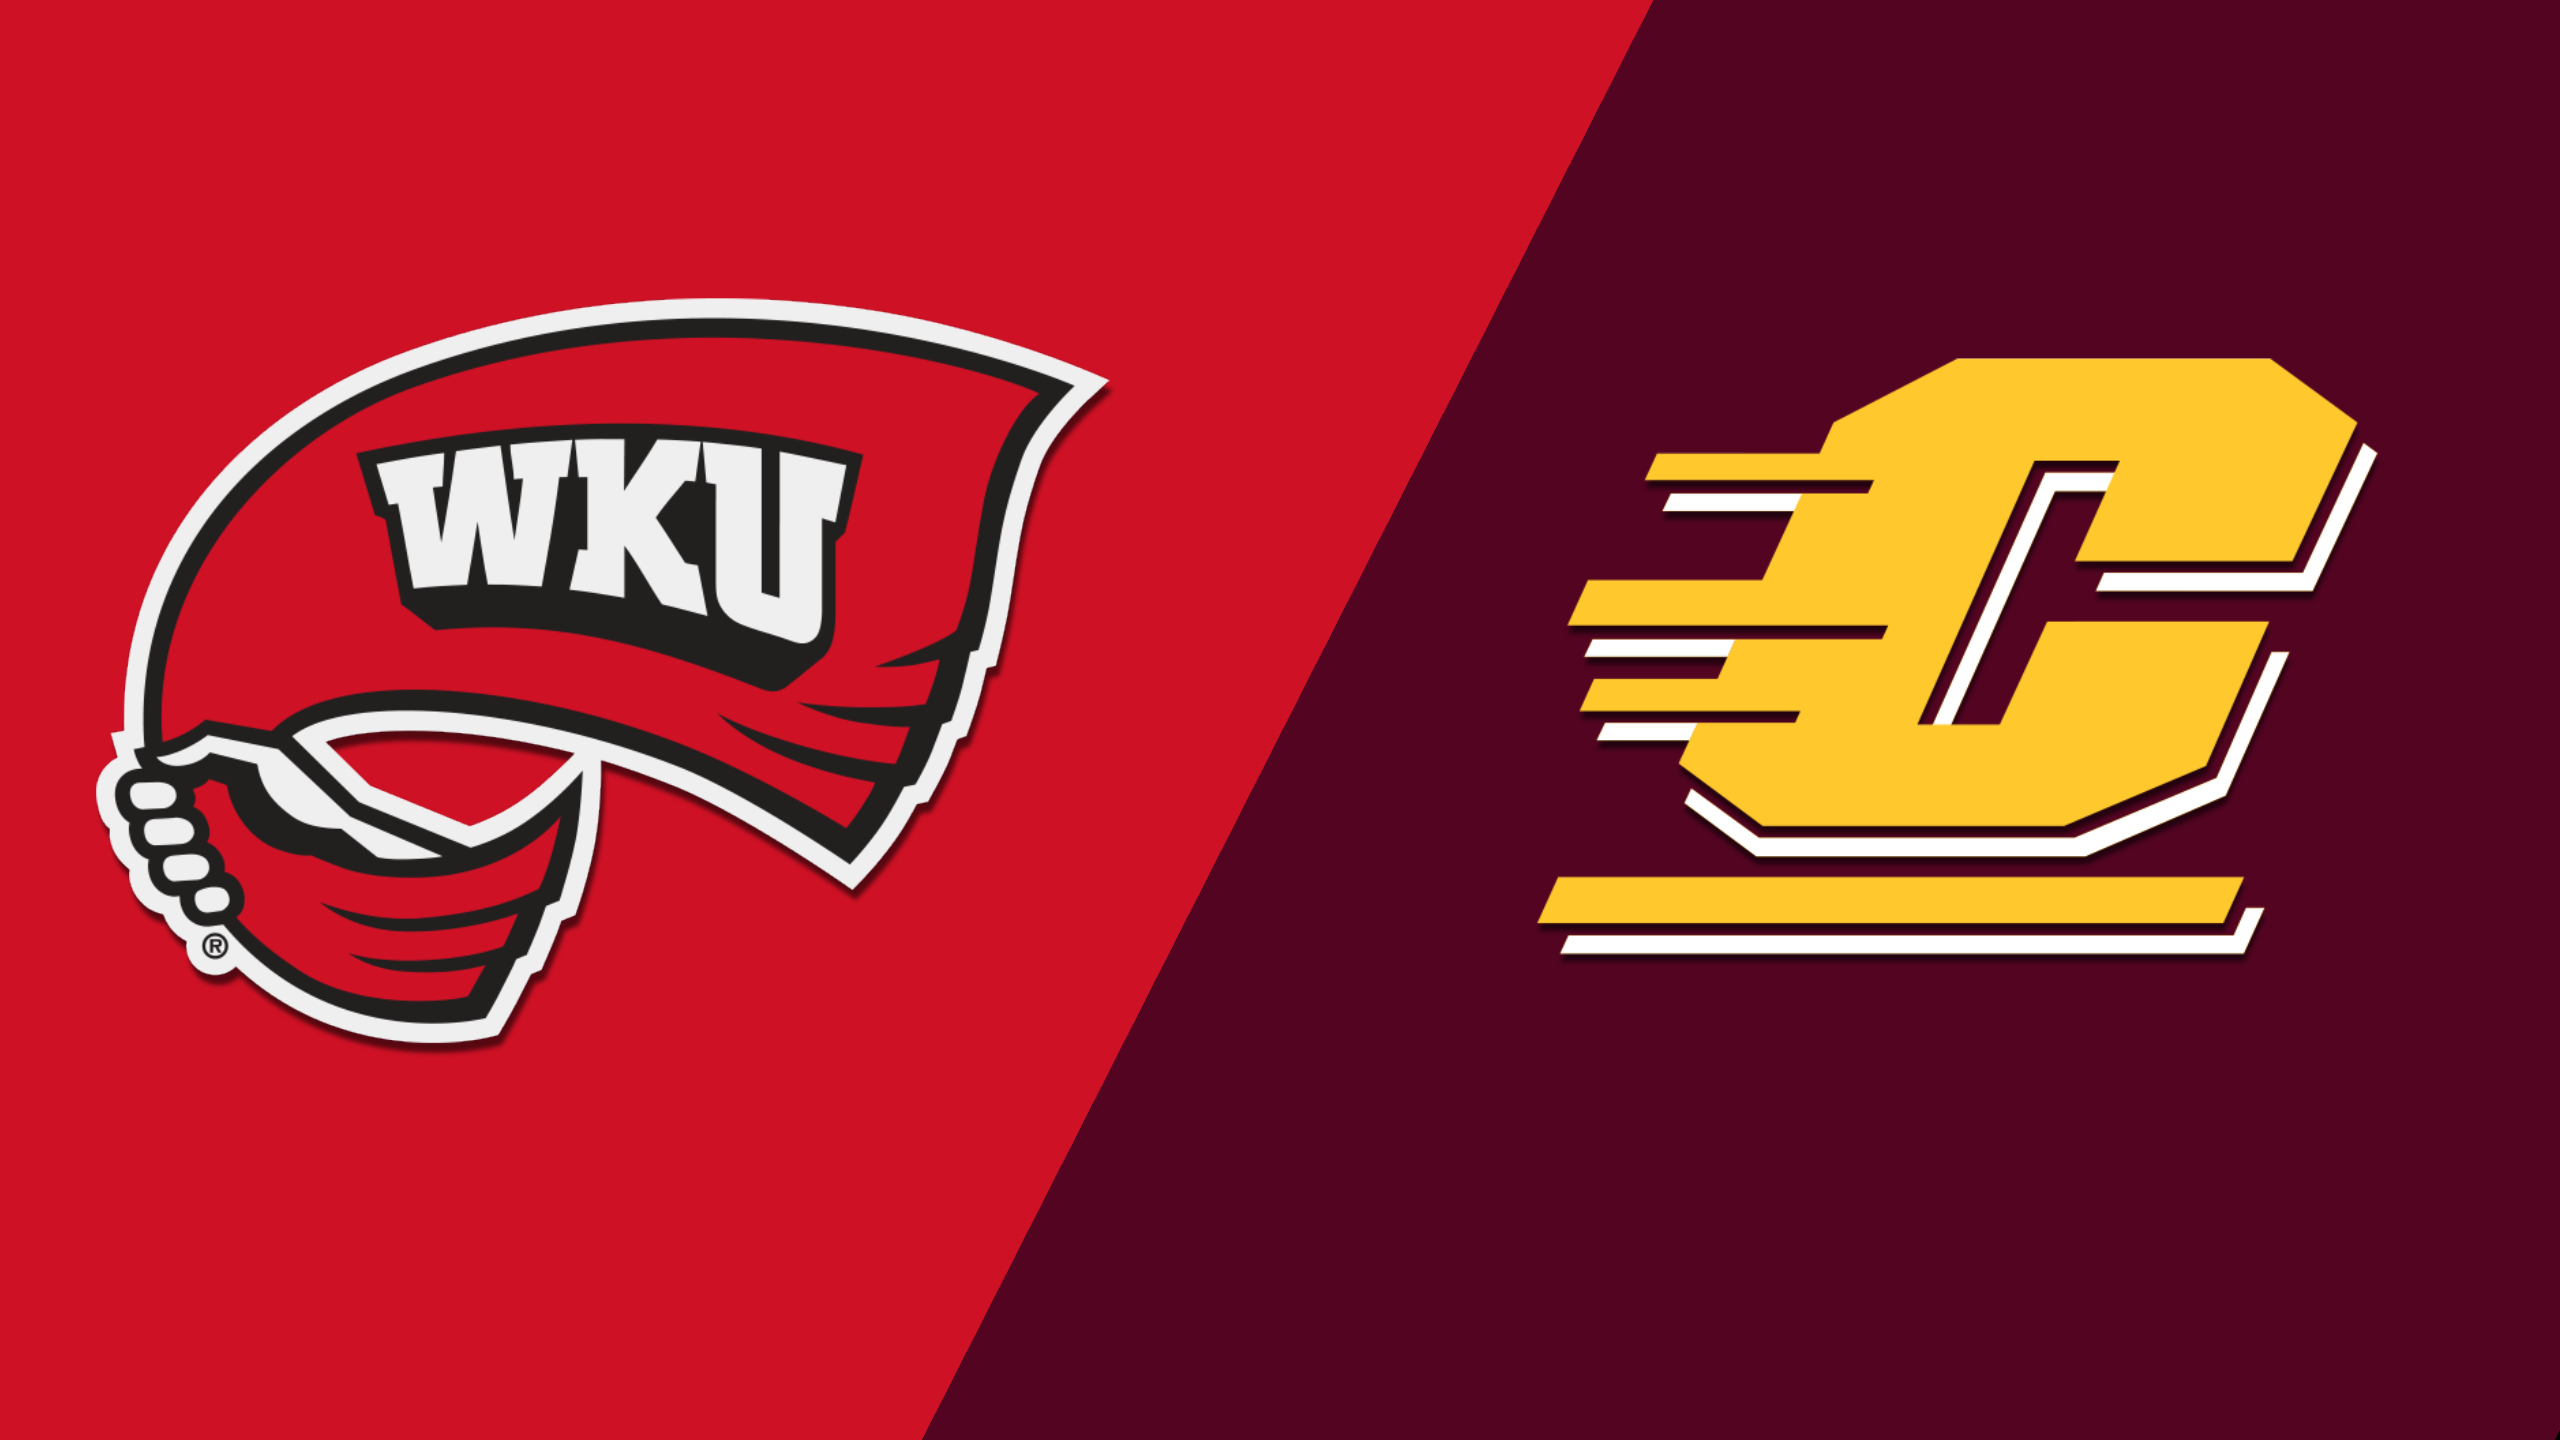 Western Kentucky vs. Central Michigan (W Basketball)